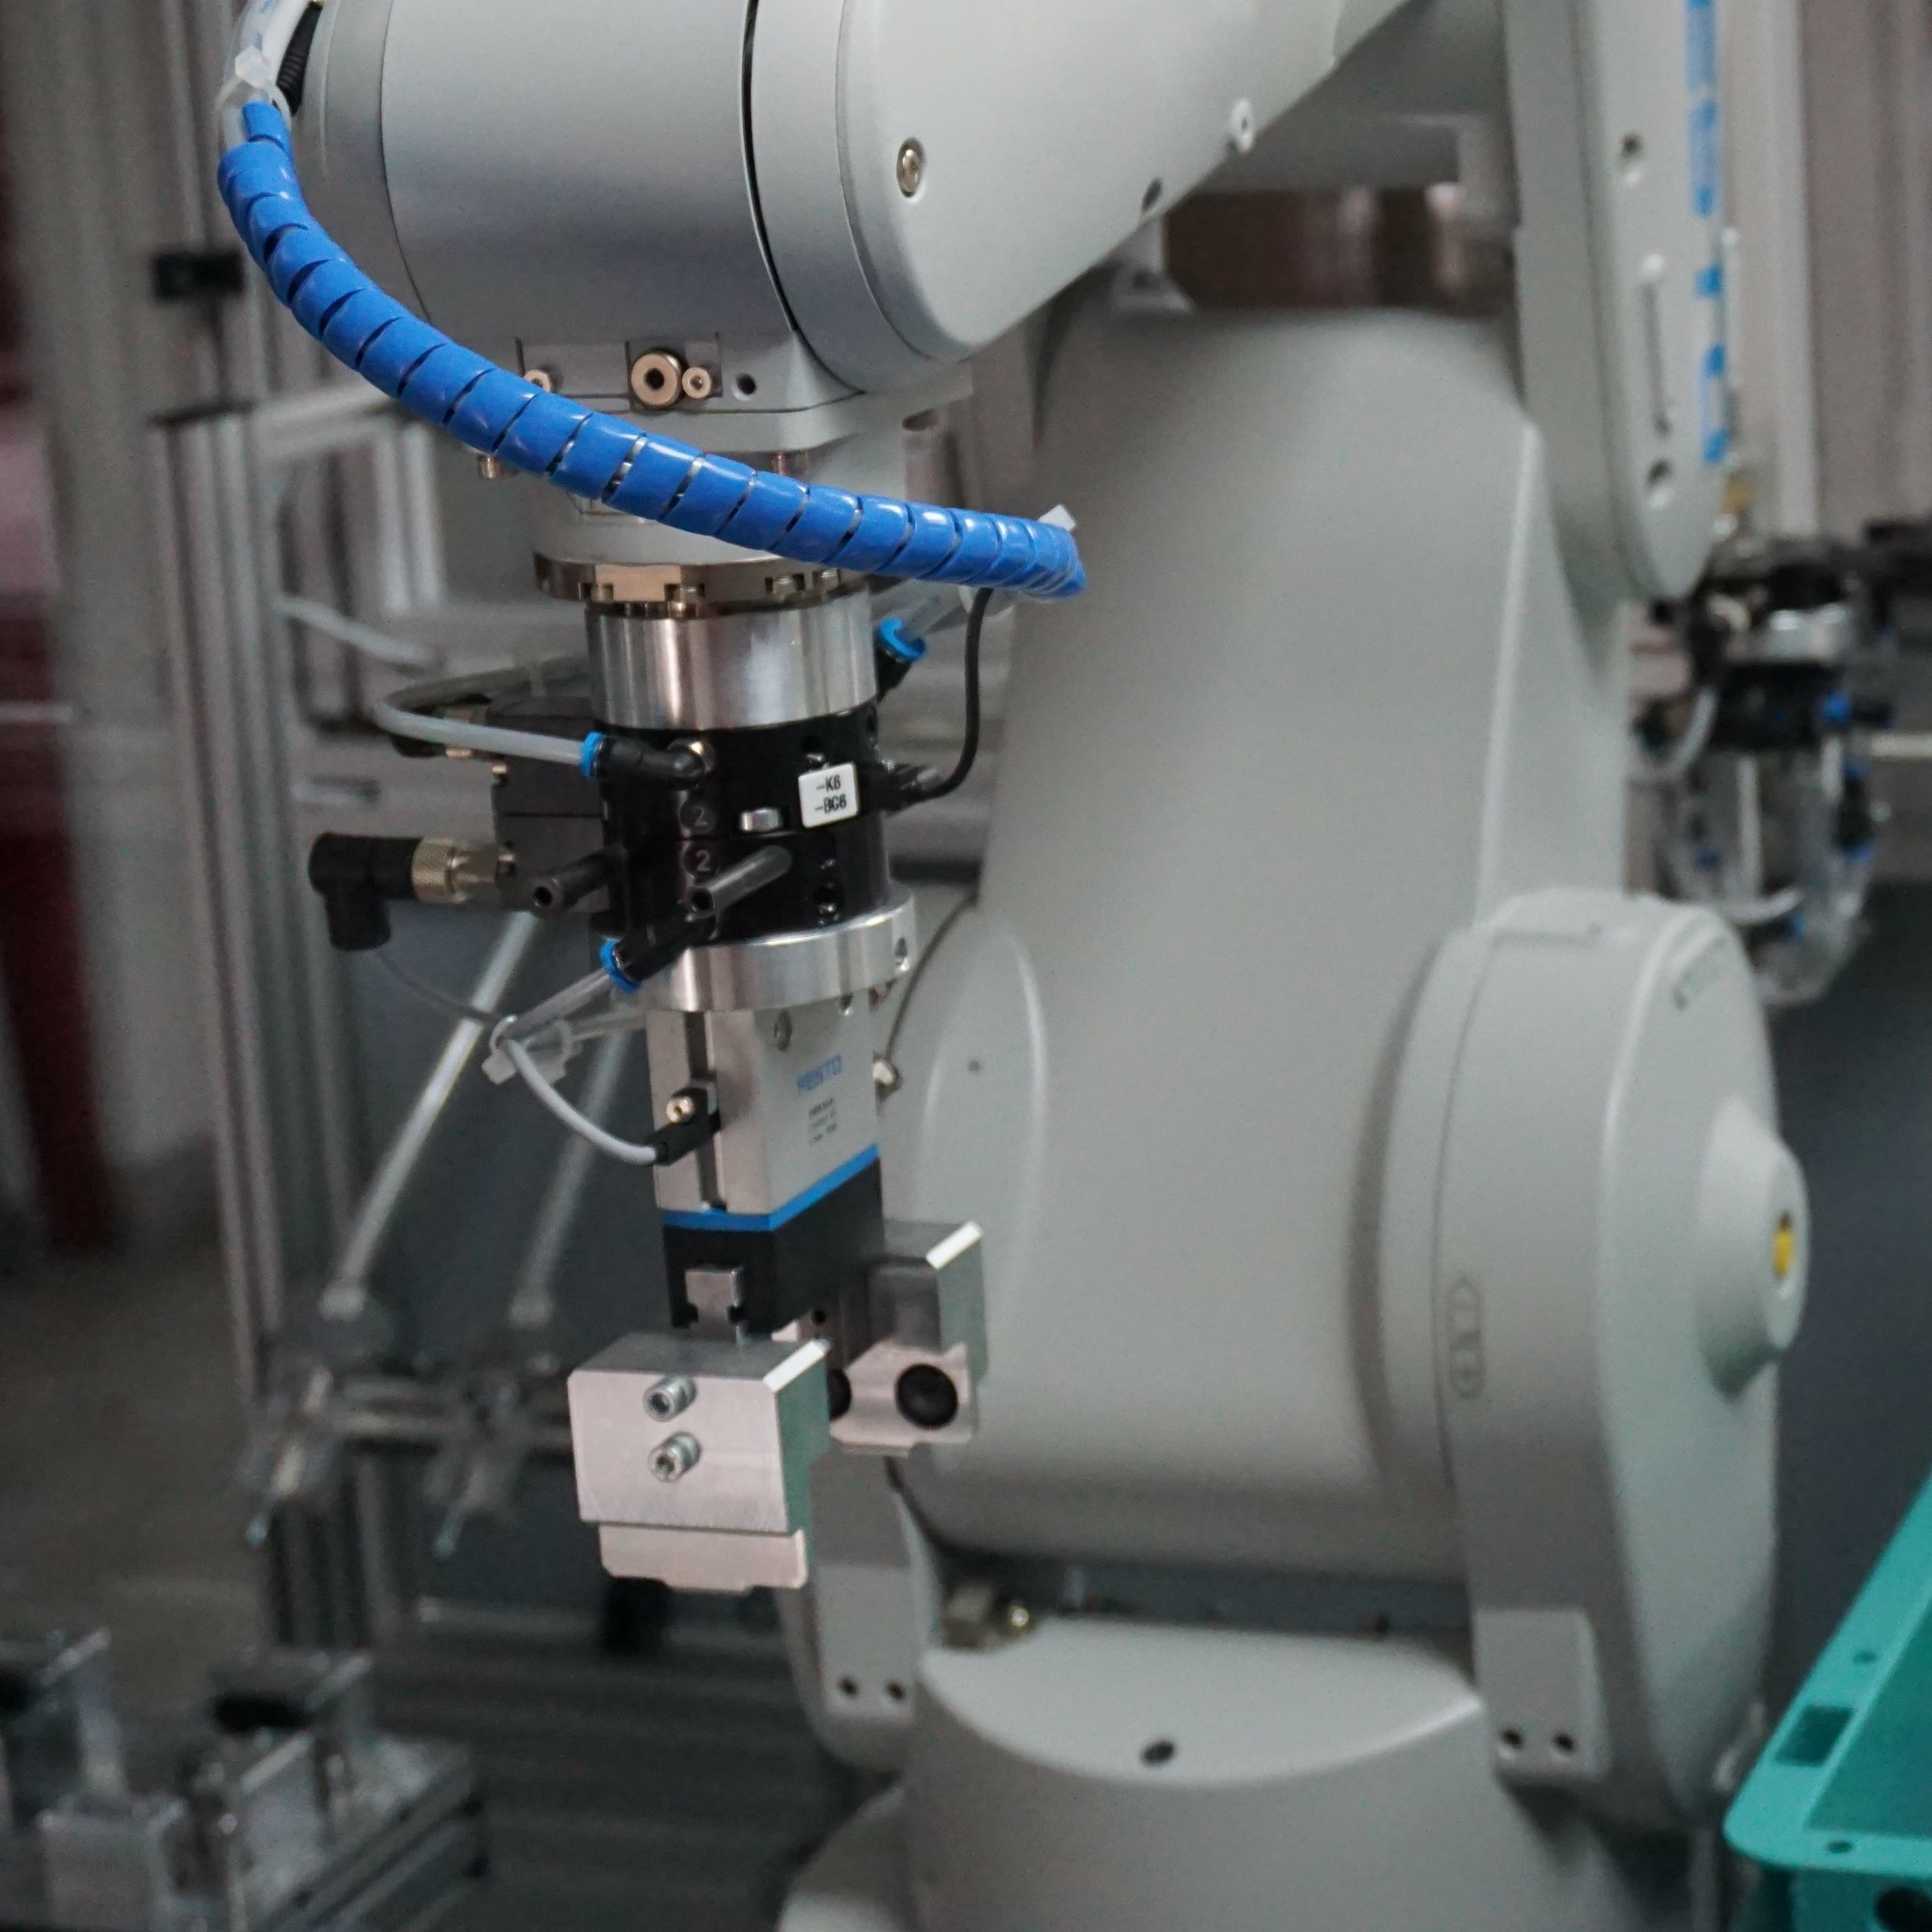 Robotic arm sitting idle in a lab environment.